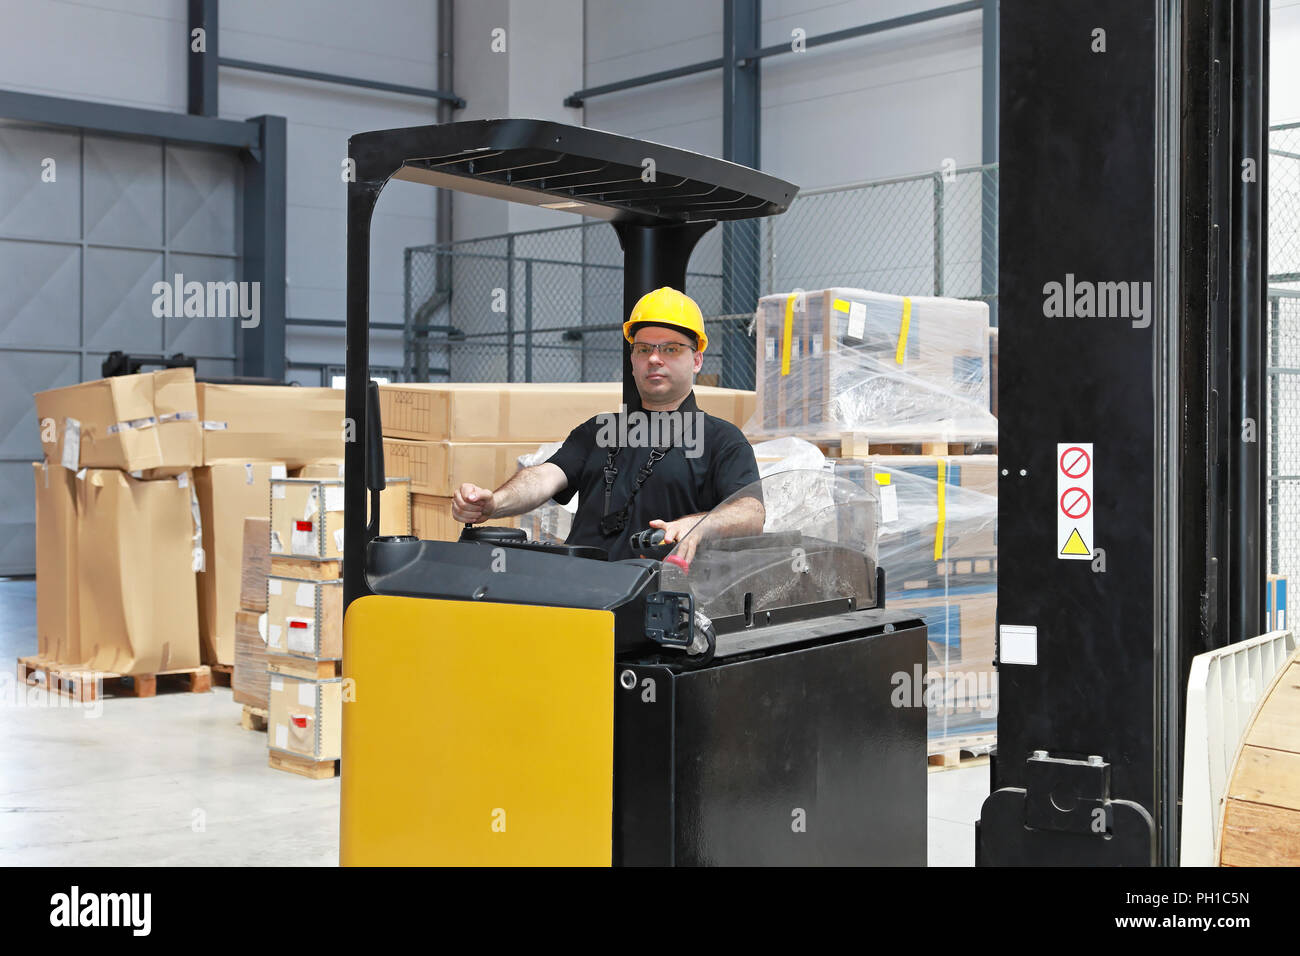 Forklift driver with yellow helmet in distribution warehouse - Stock Image